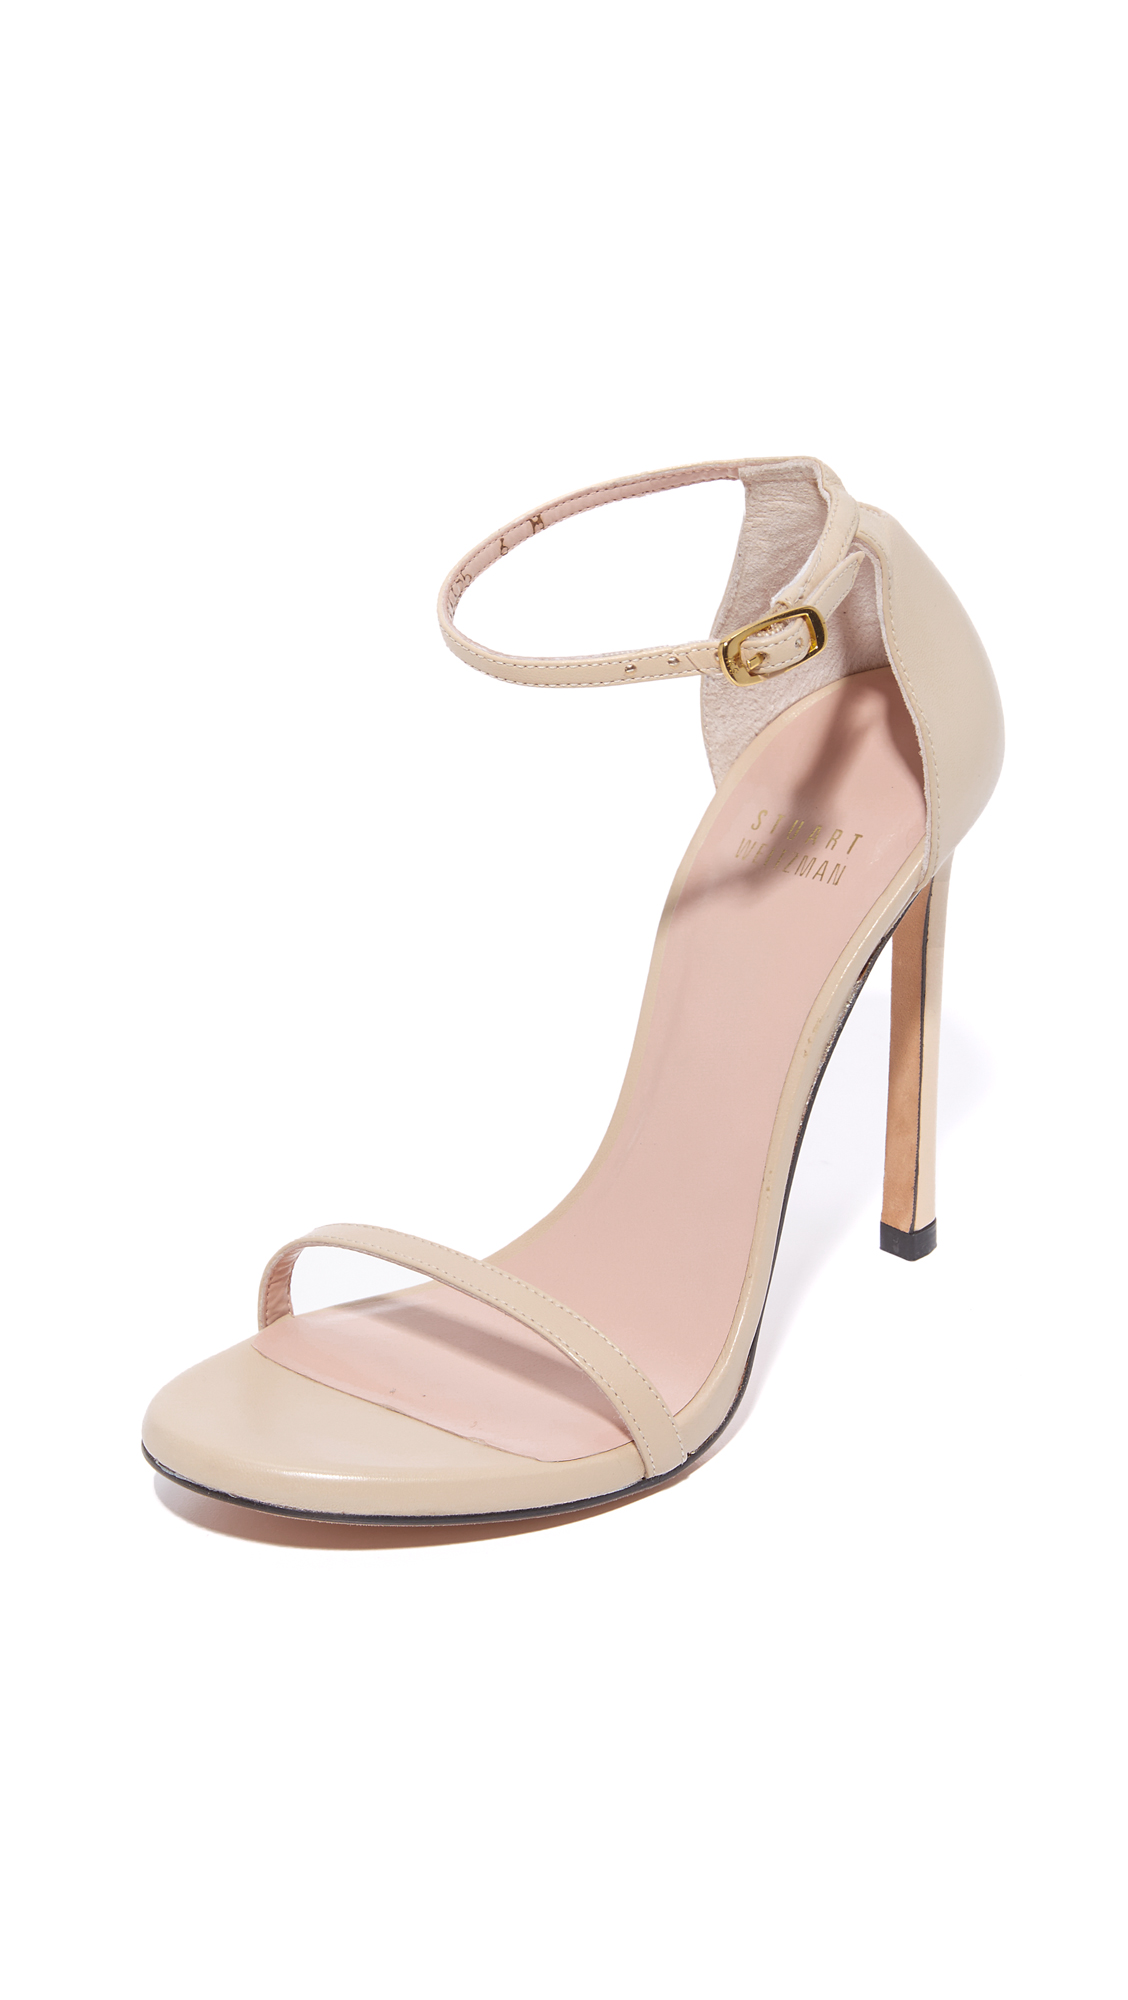 Stuart Weitzman Nudist 110mm Sandals - Pan